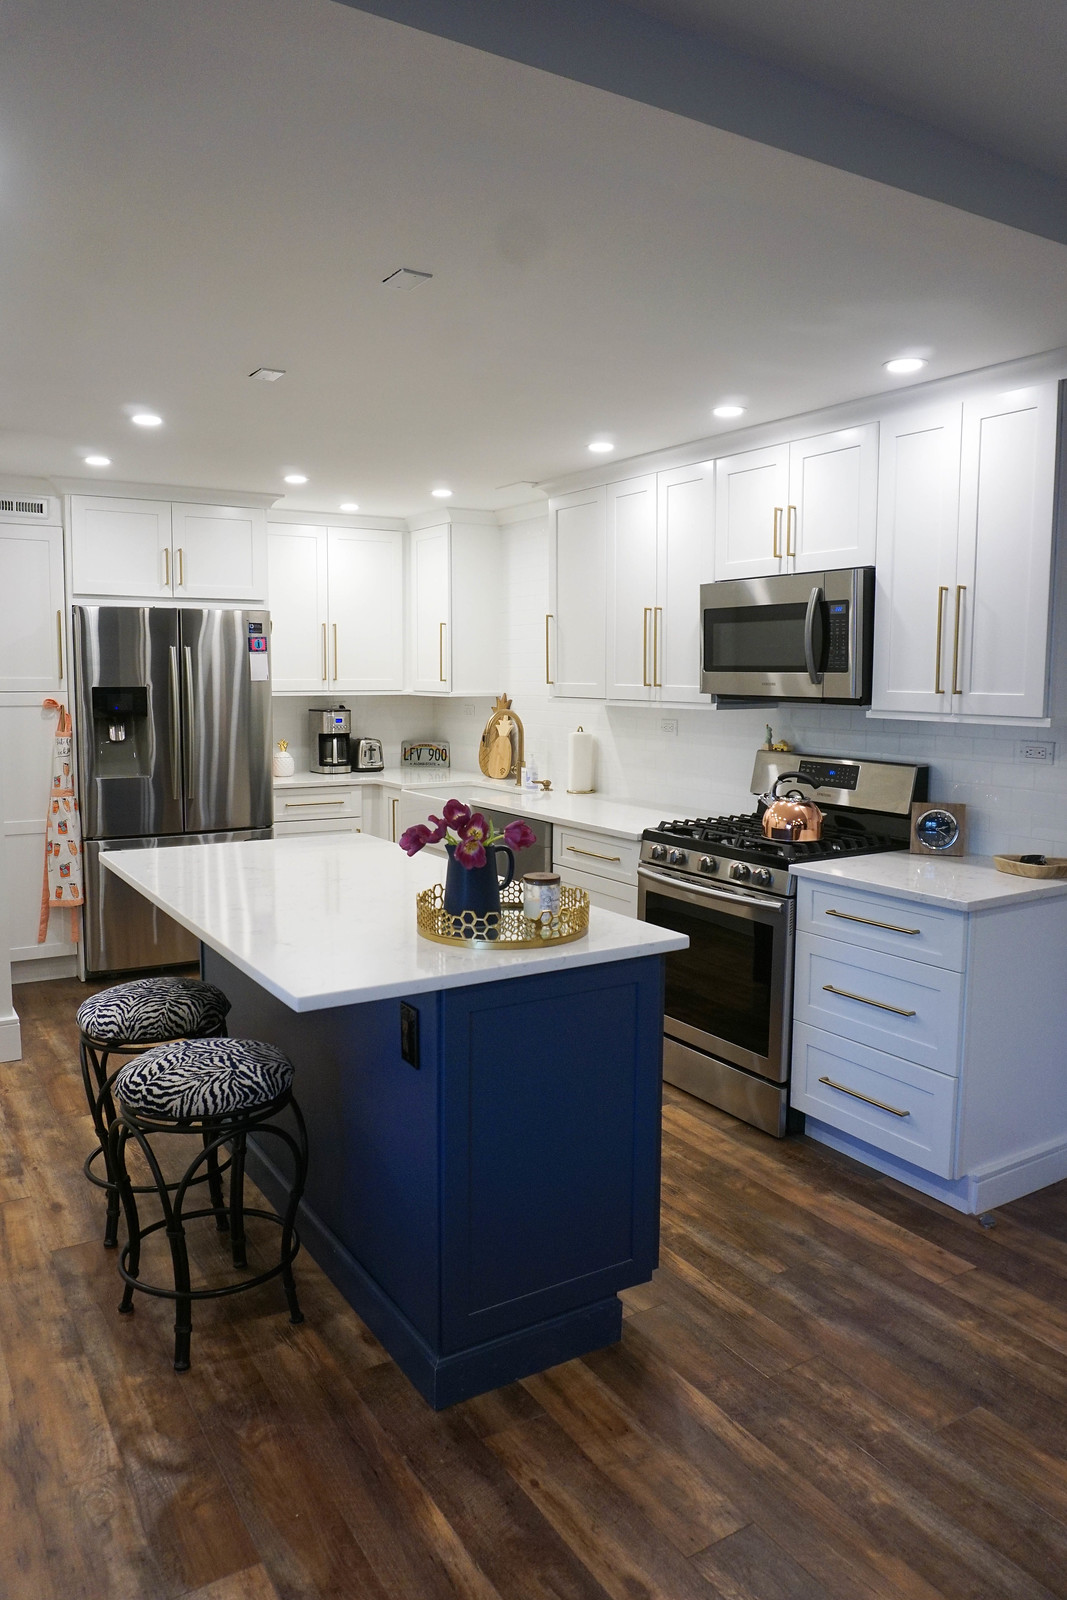 Apartment Kitchen Fabuwood Allure Galaxy Frost Cabinets Wolf Home Products Indigo Kitchen Island Cabinets